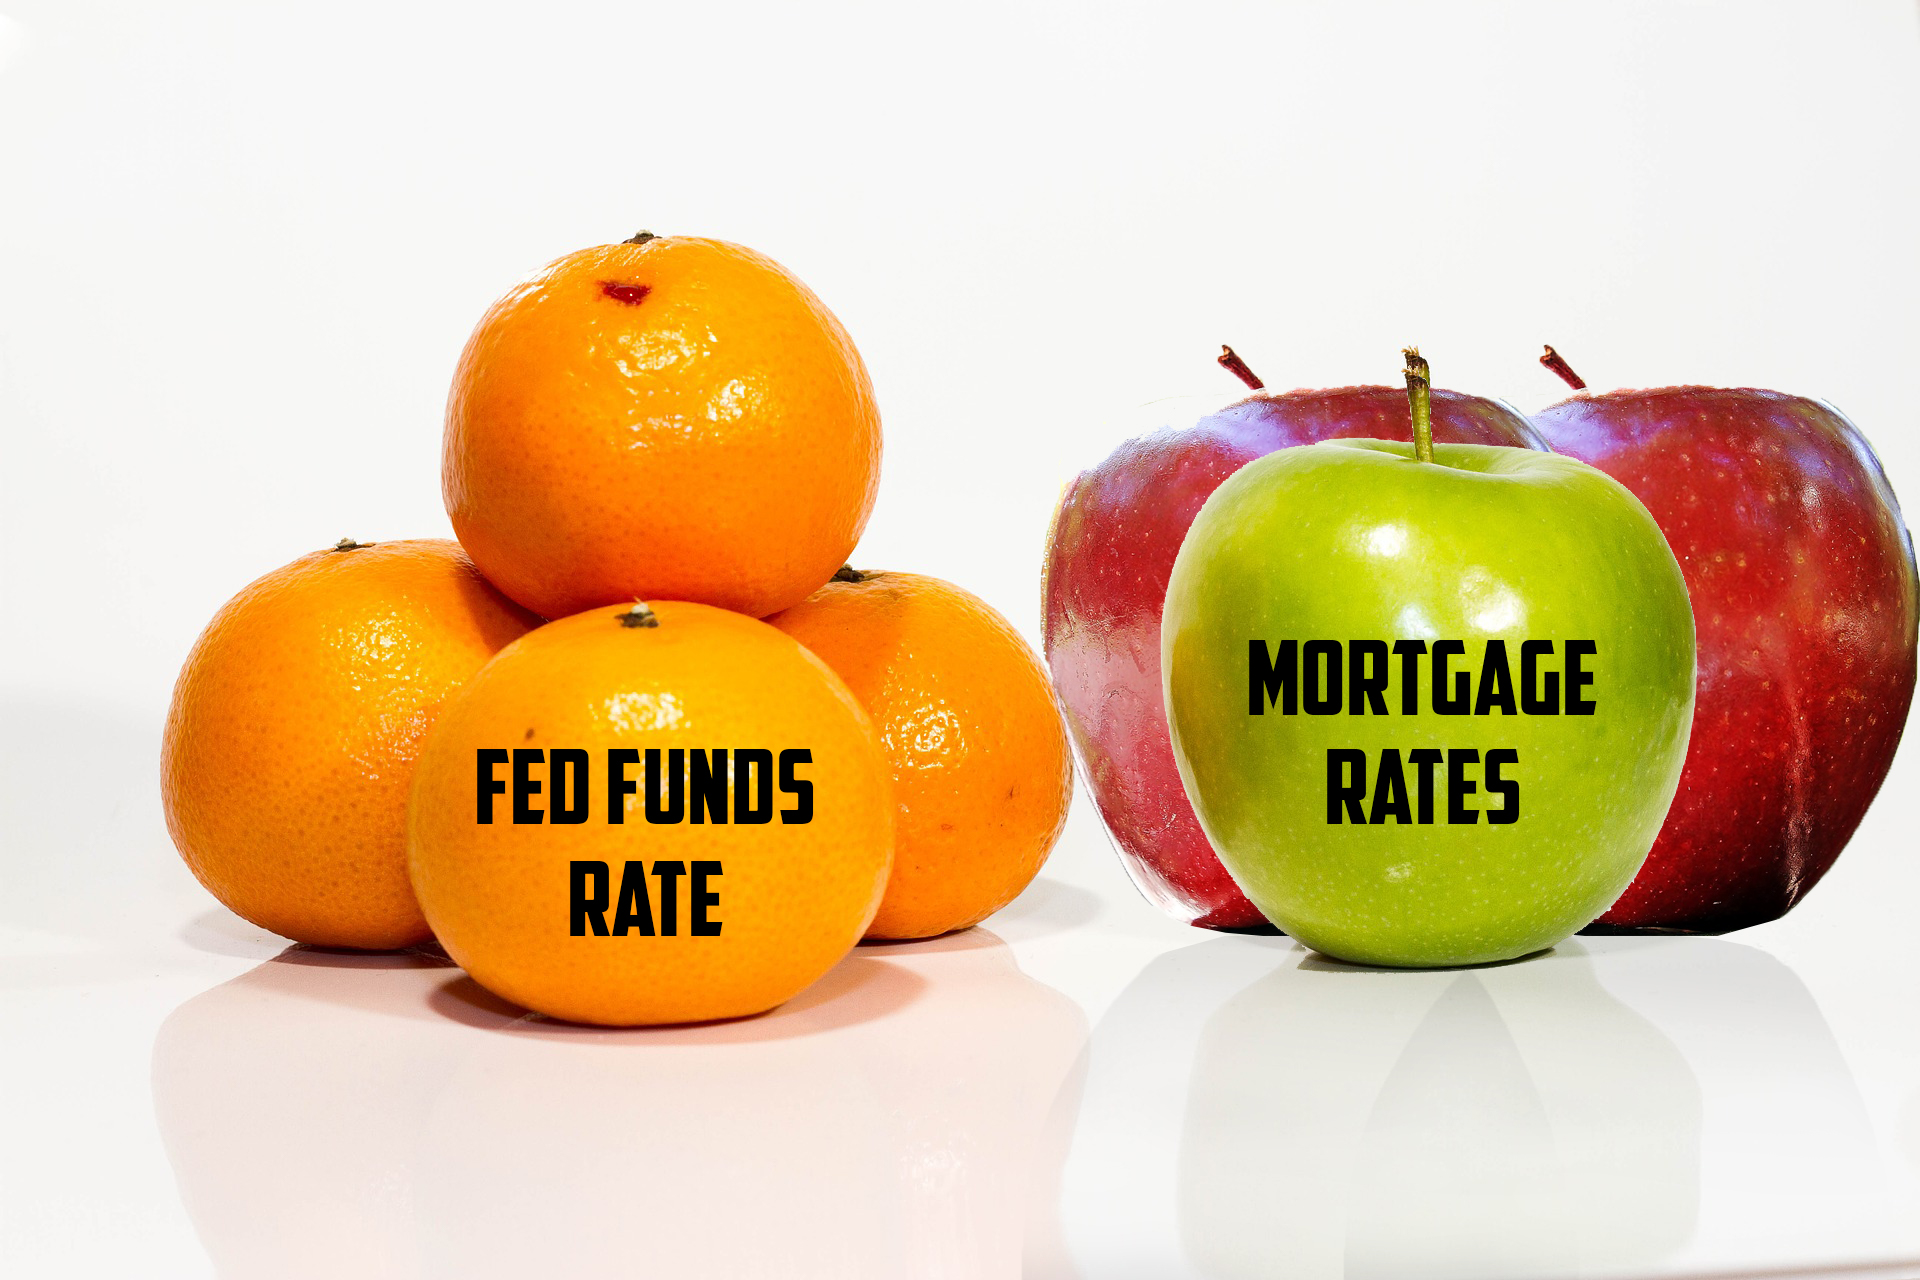 Fed Funds Rate and Mortgage Rates